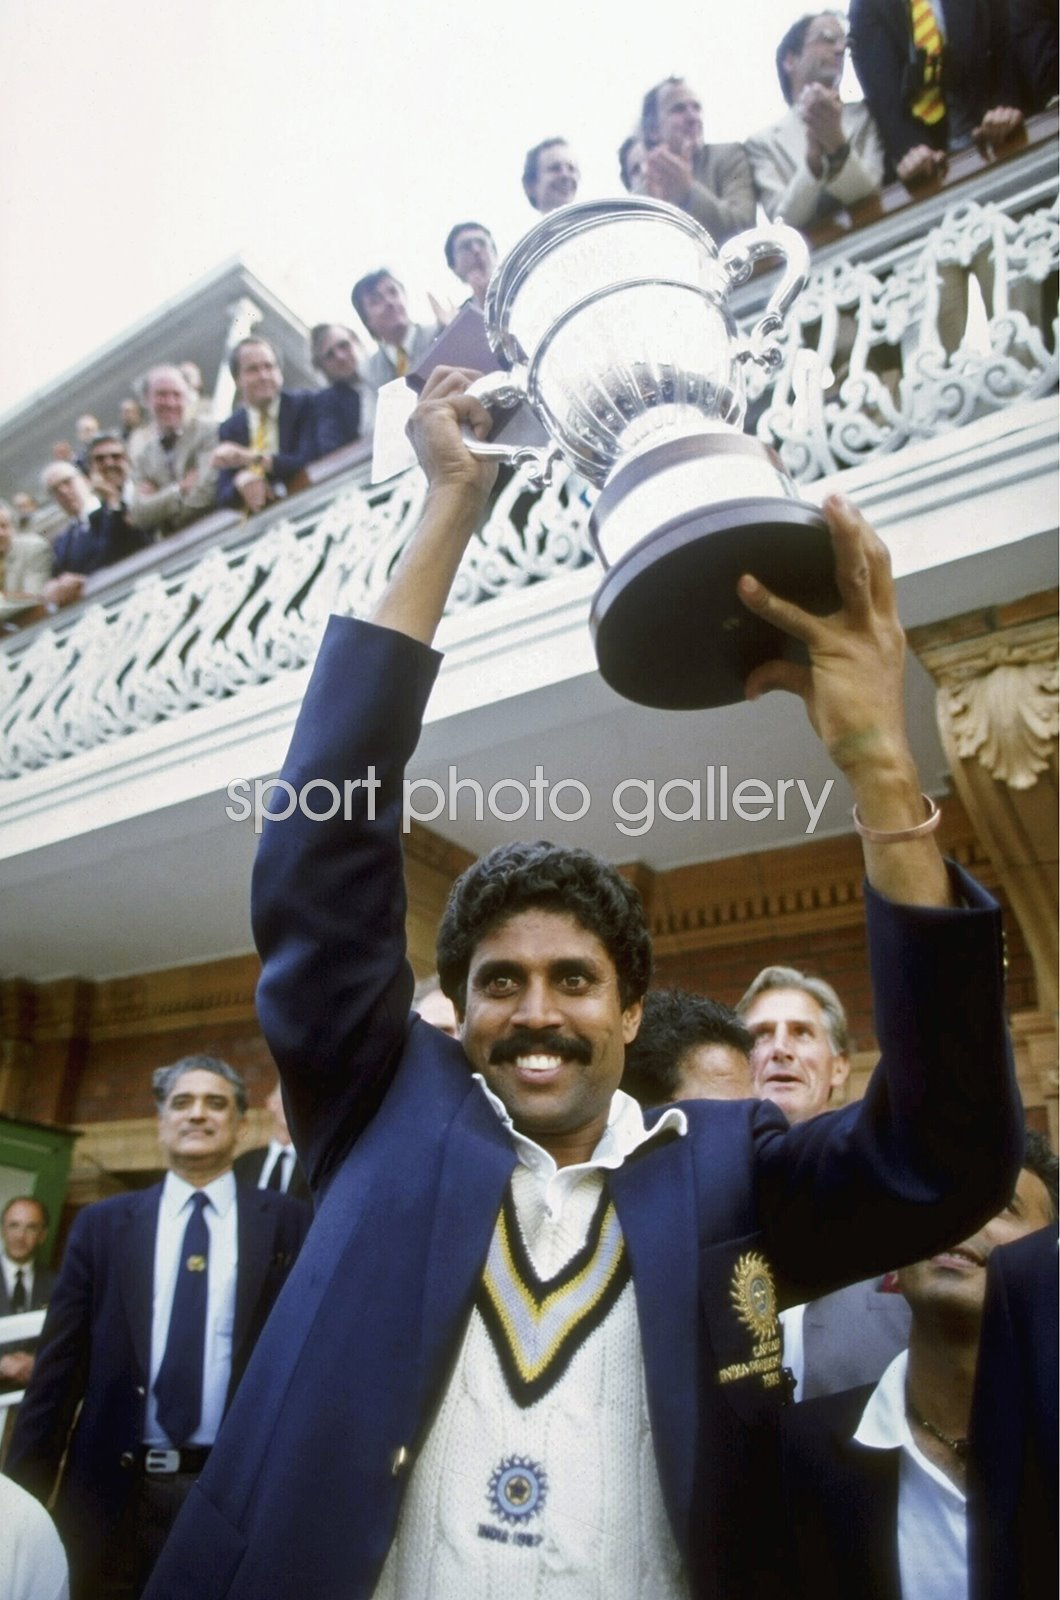 Kapil Dev India World Cup Winning Captain 1983